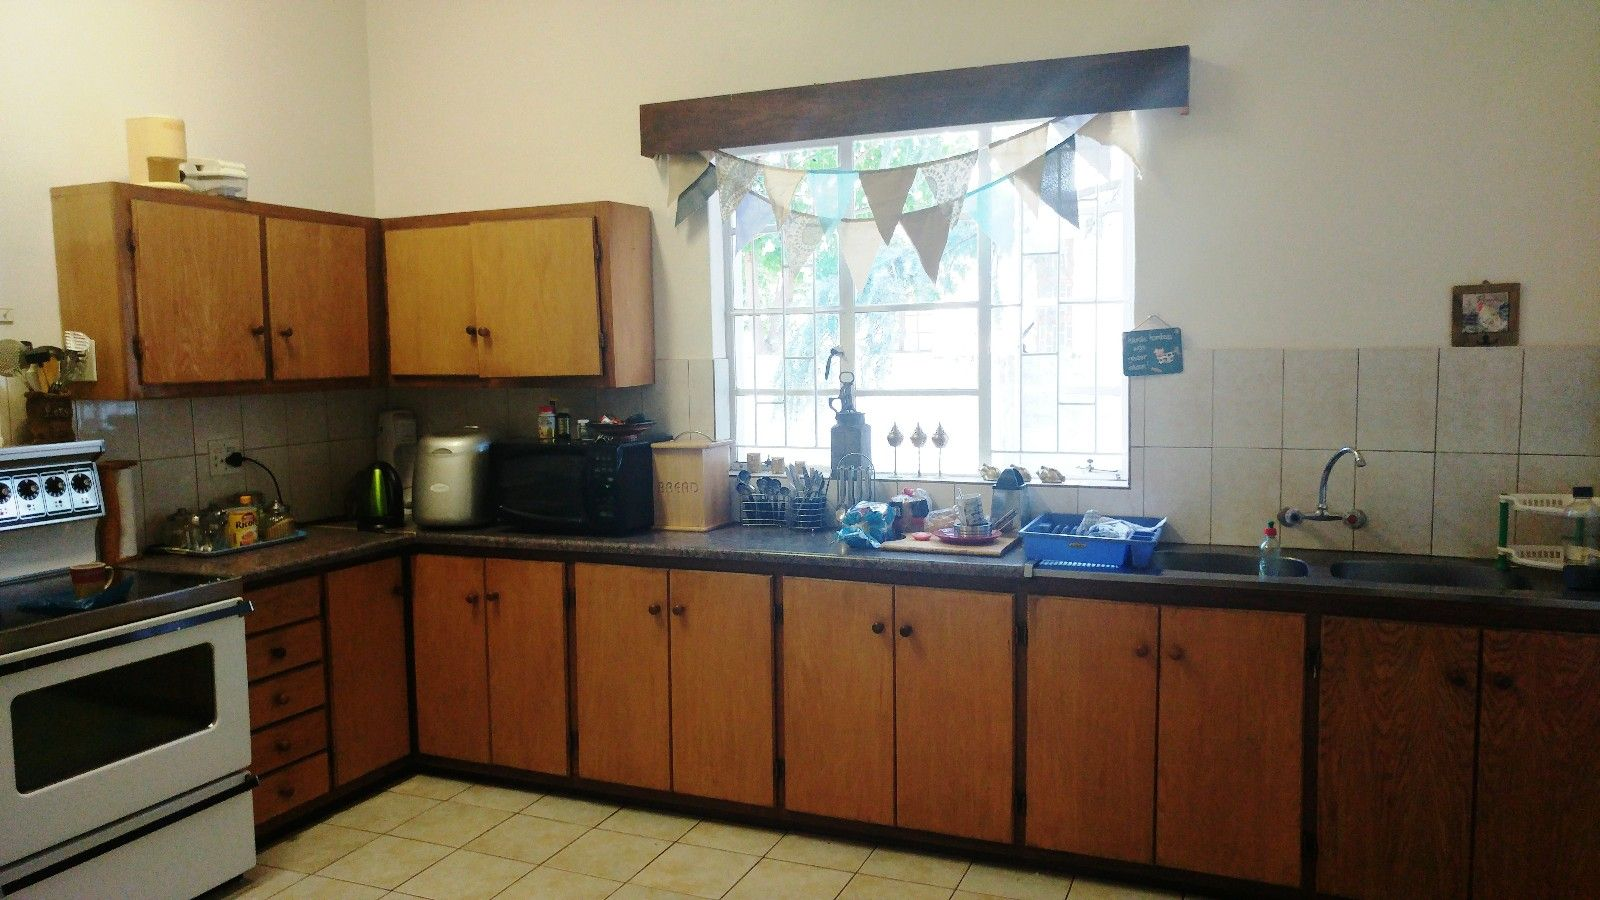 Potchefstroom Central for sale property. Ref No: 13460775. Picture no 9